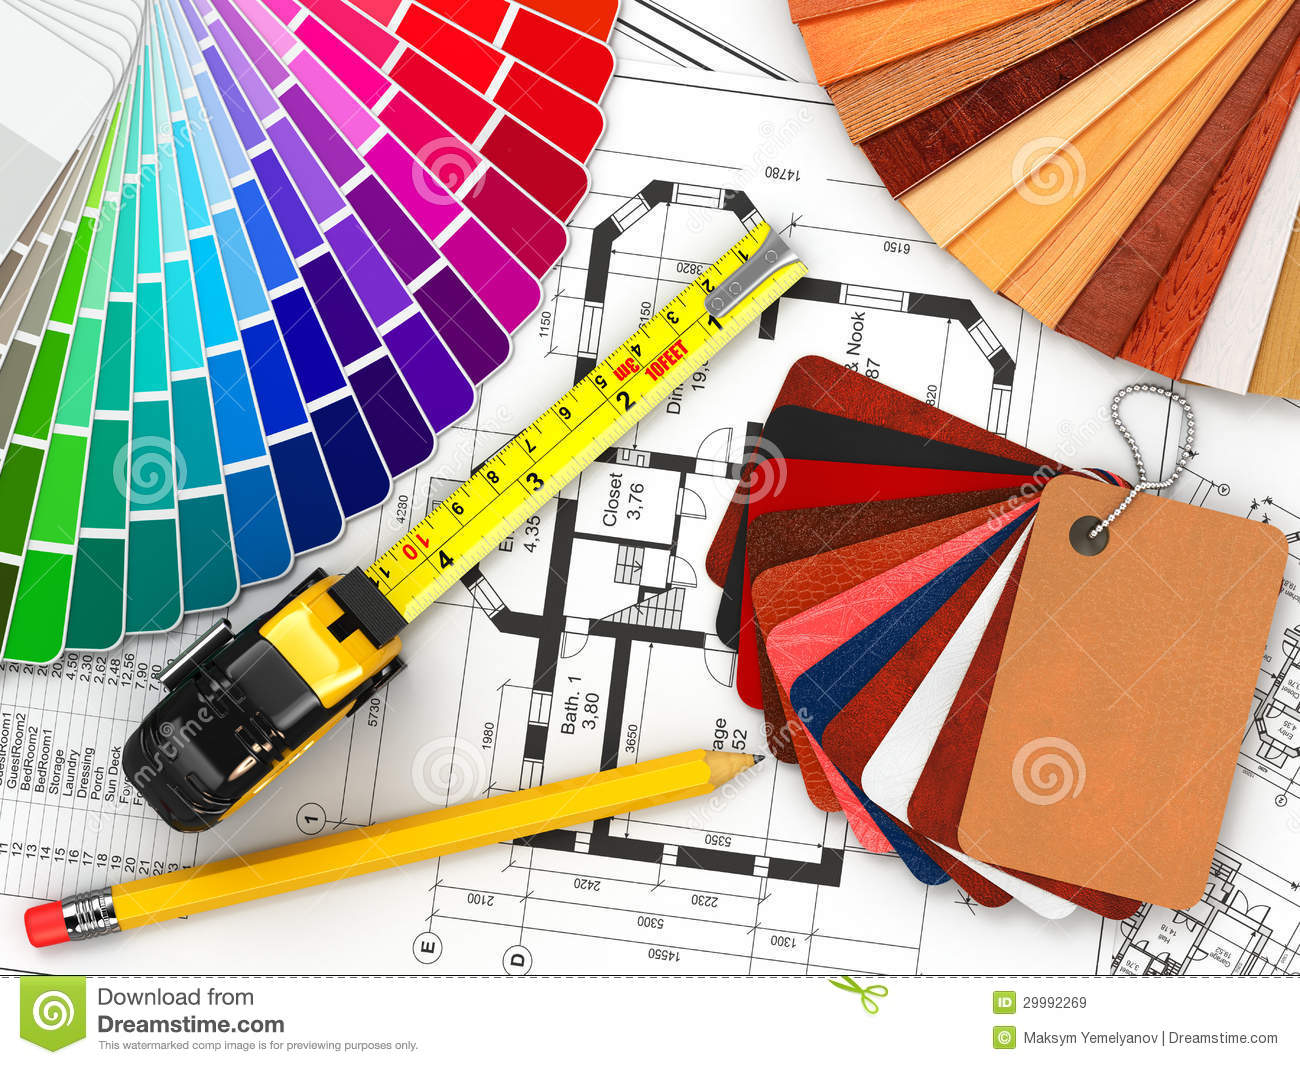 Royalty Free Stock Photo Download Interior Design Architectural Materials Tools